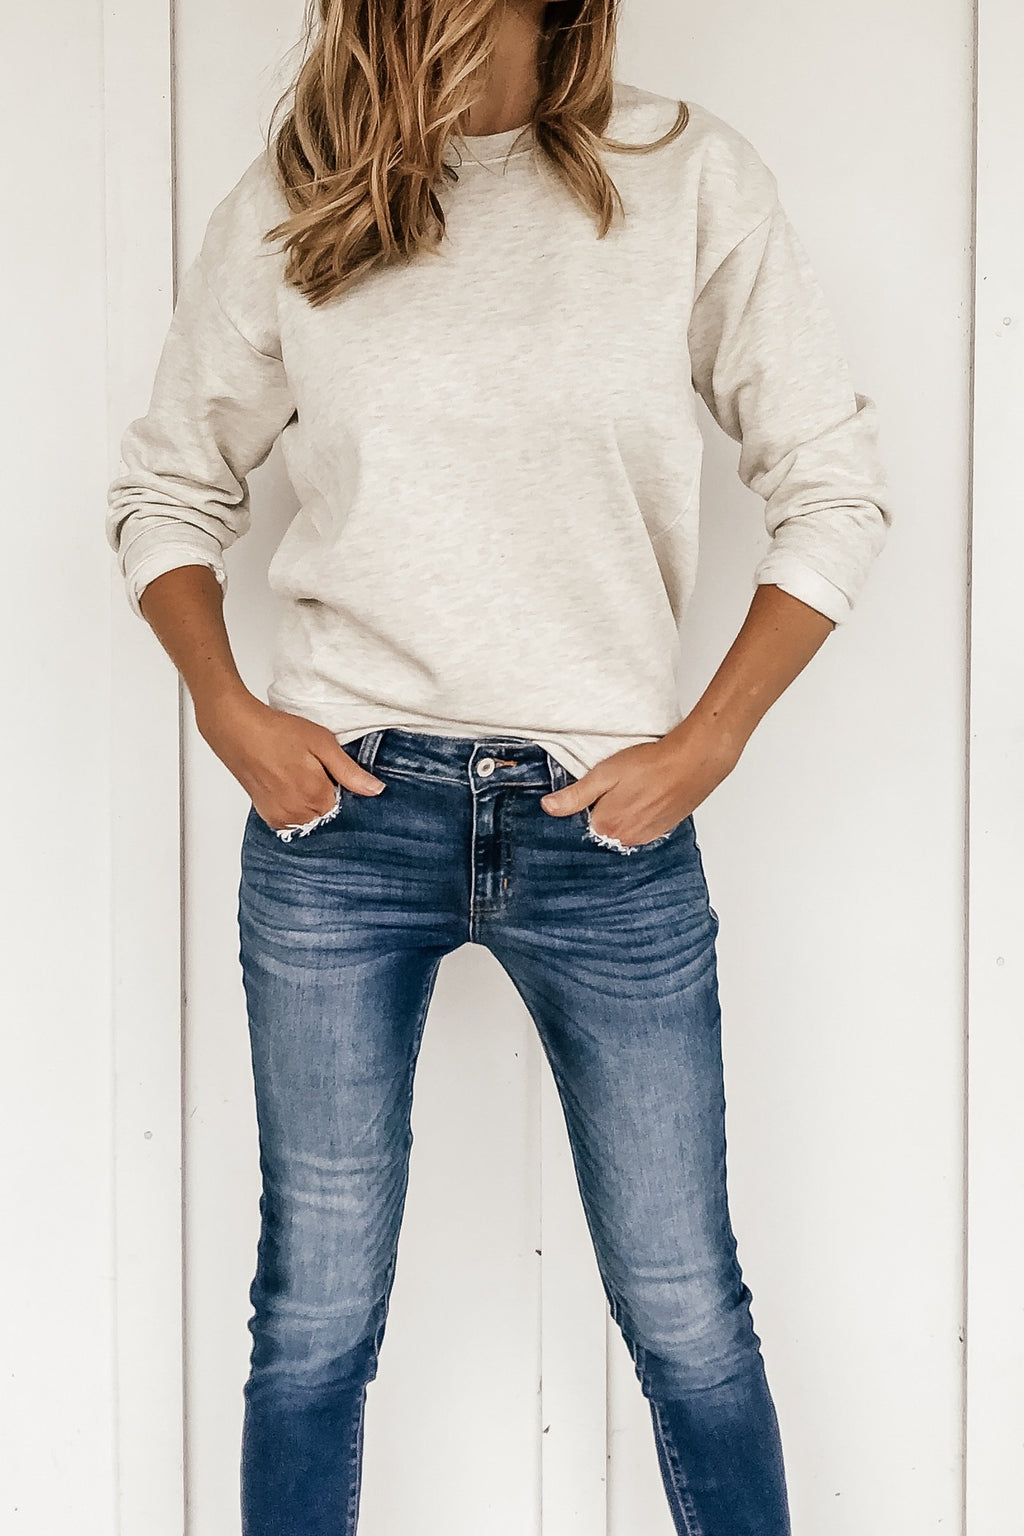 Back to the Basics Pullover Sweatshirt